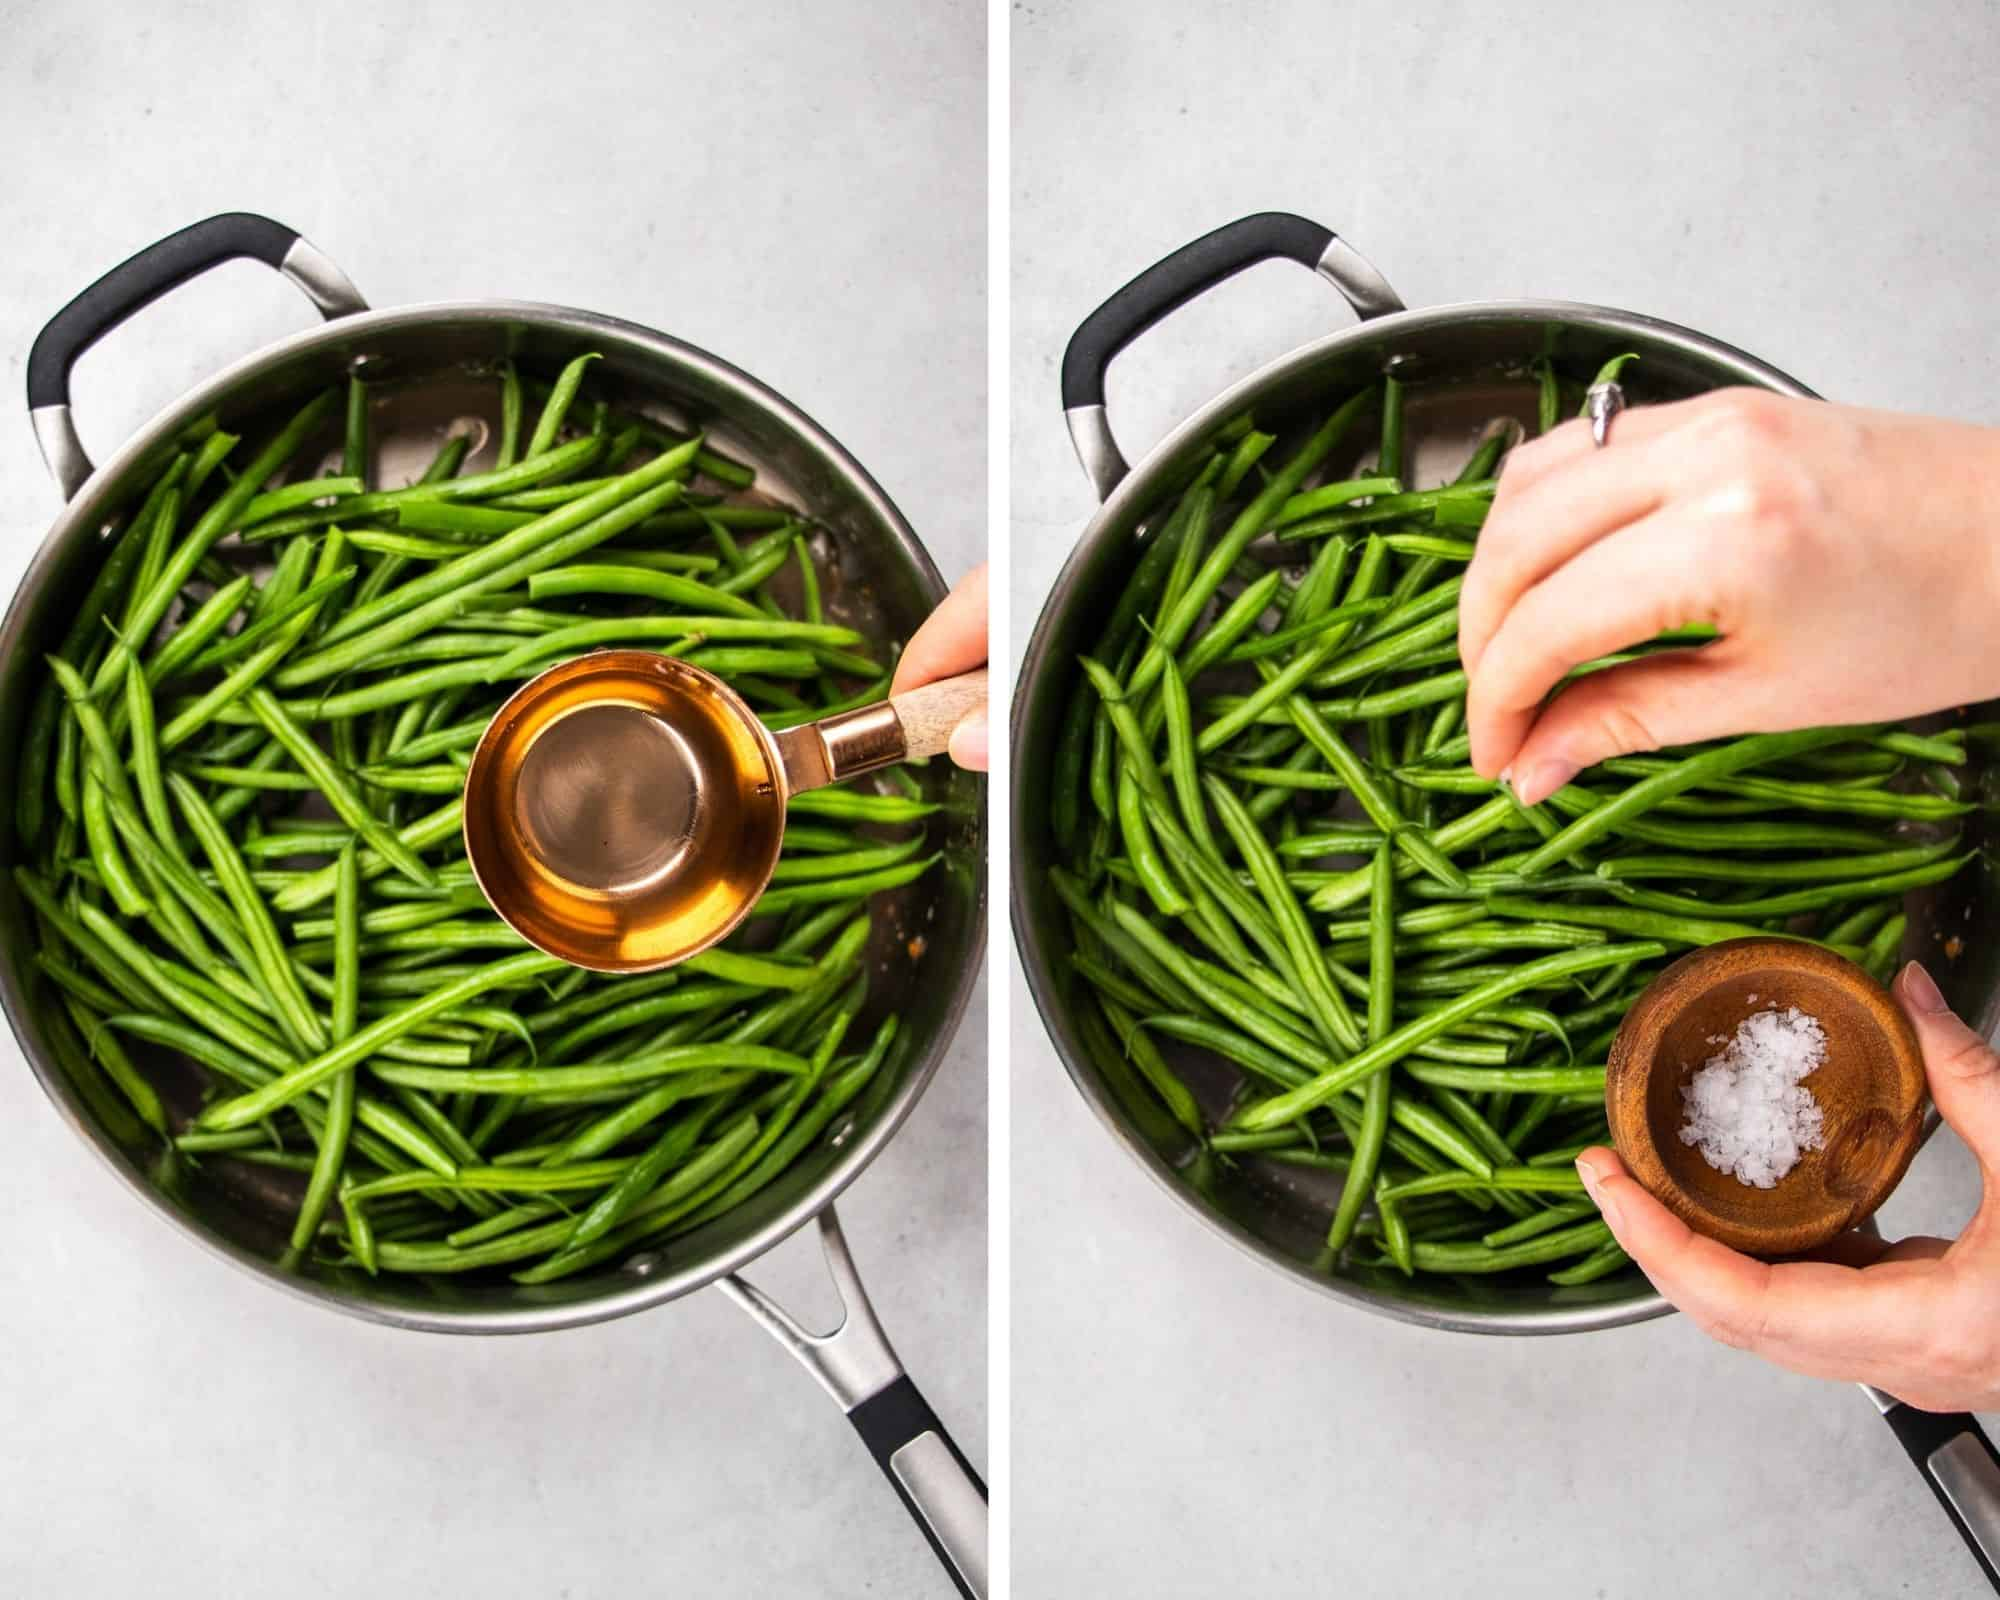 Process photos of how to make green beans amandine.